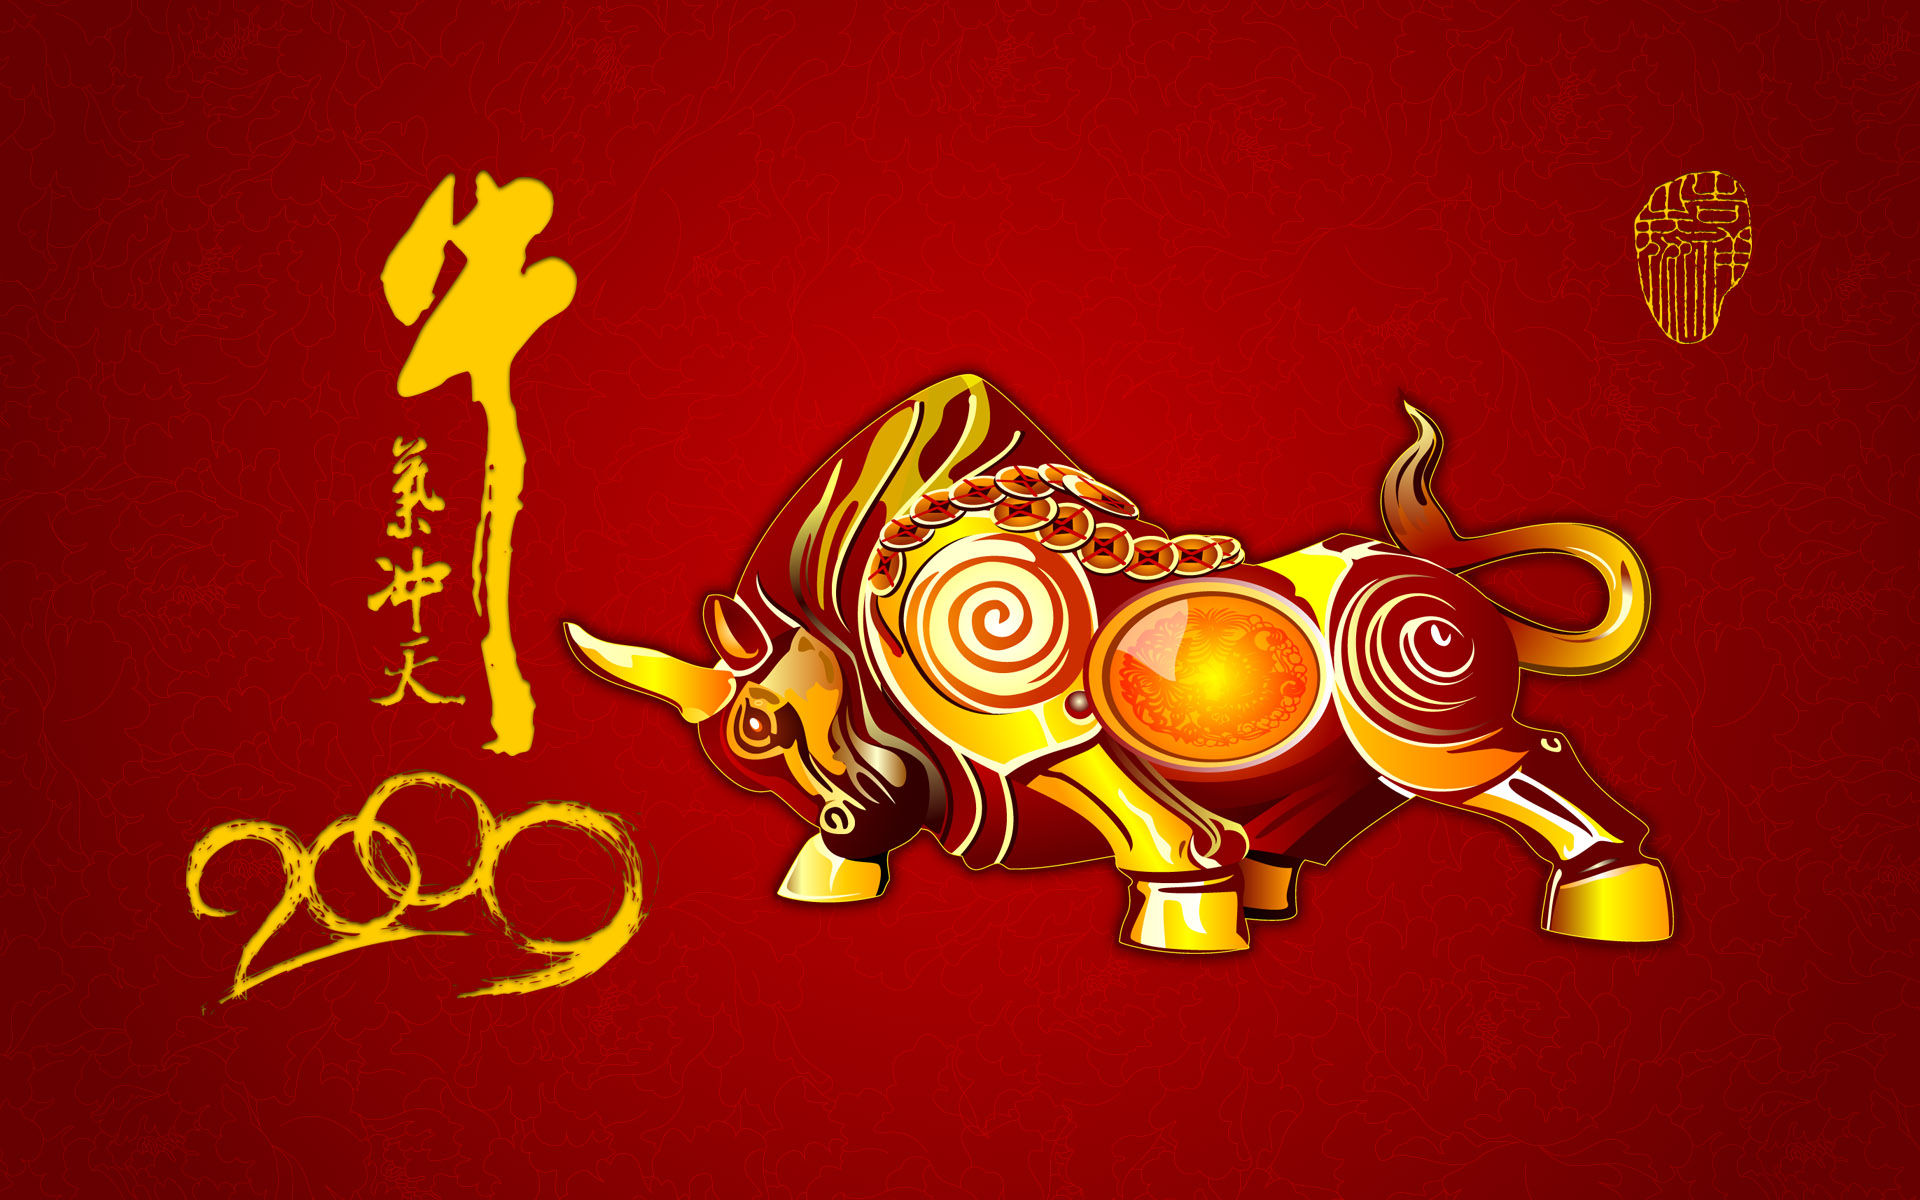 Bull wallpaper 7246 New Wallpapers Festival